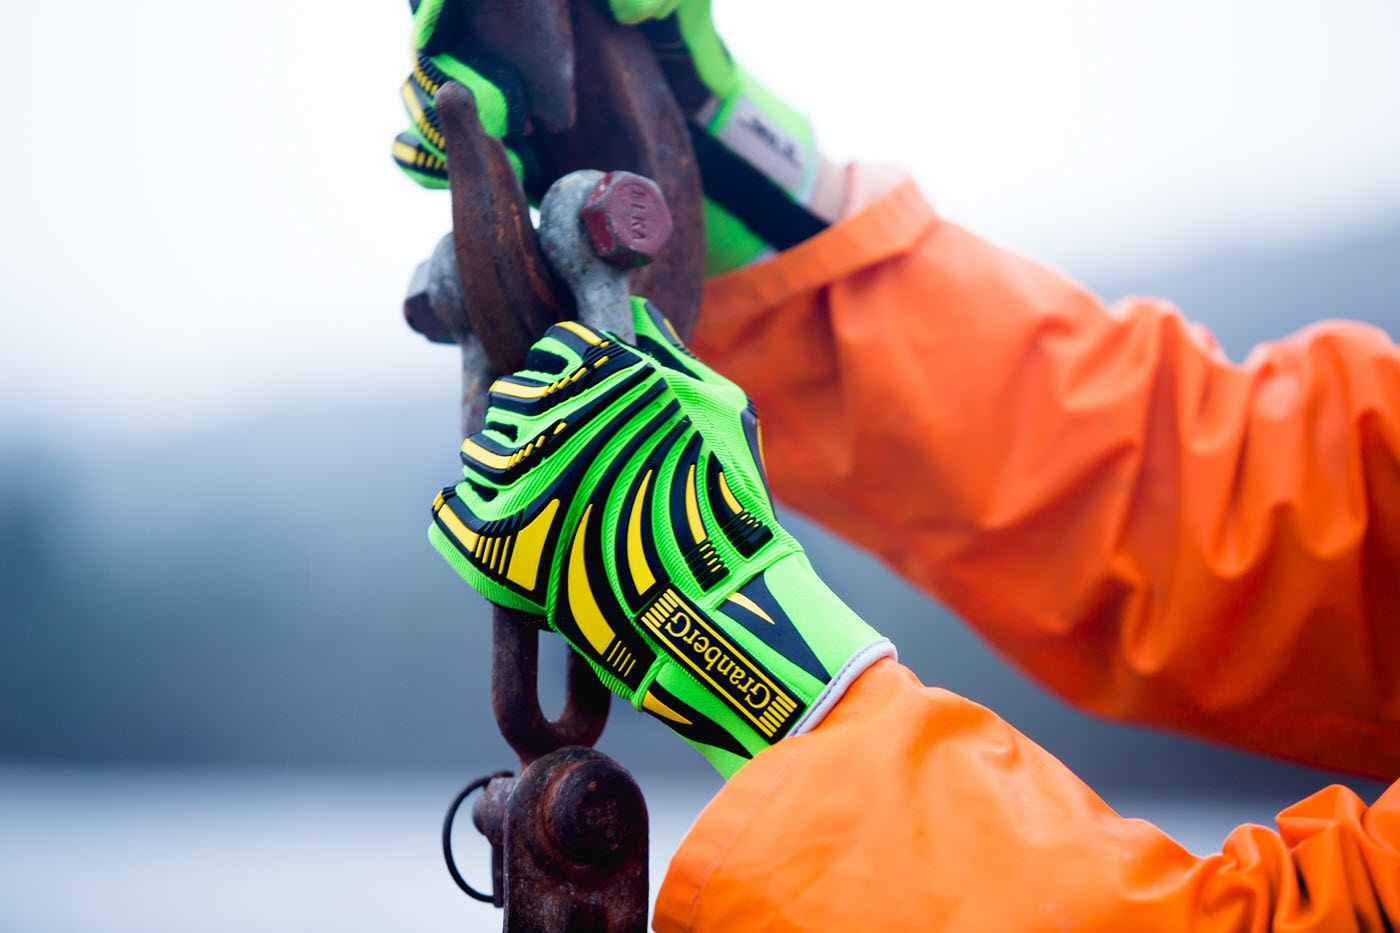 granberg gloves being used lifting a heavy chain